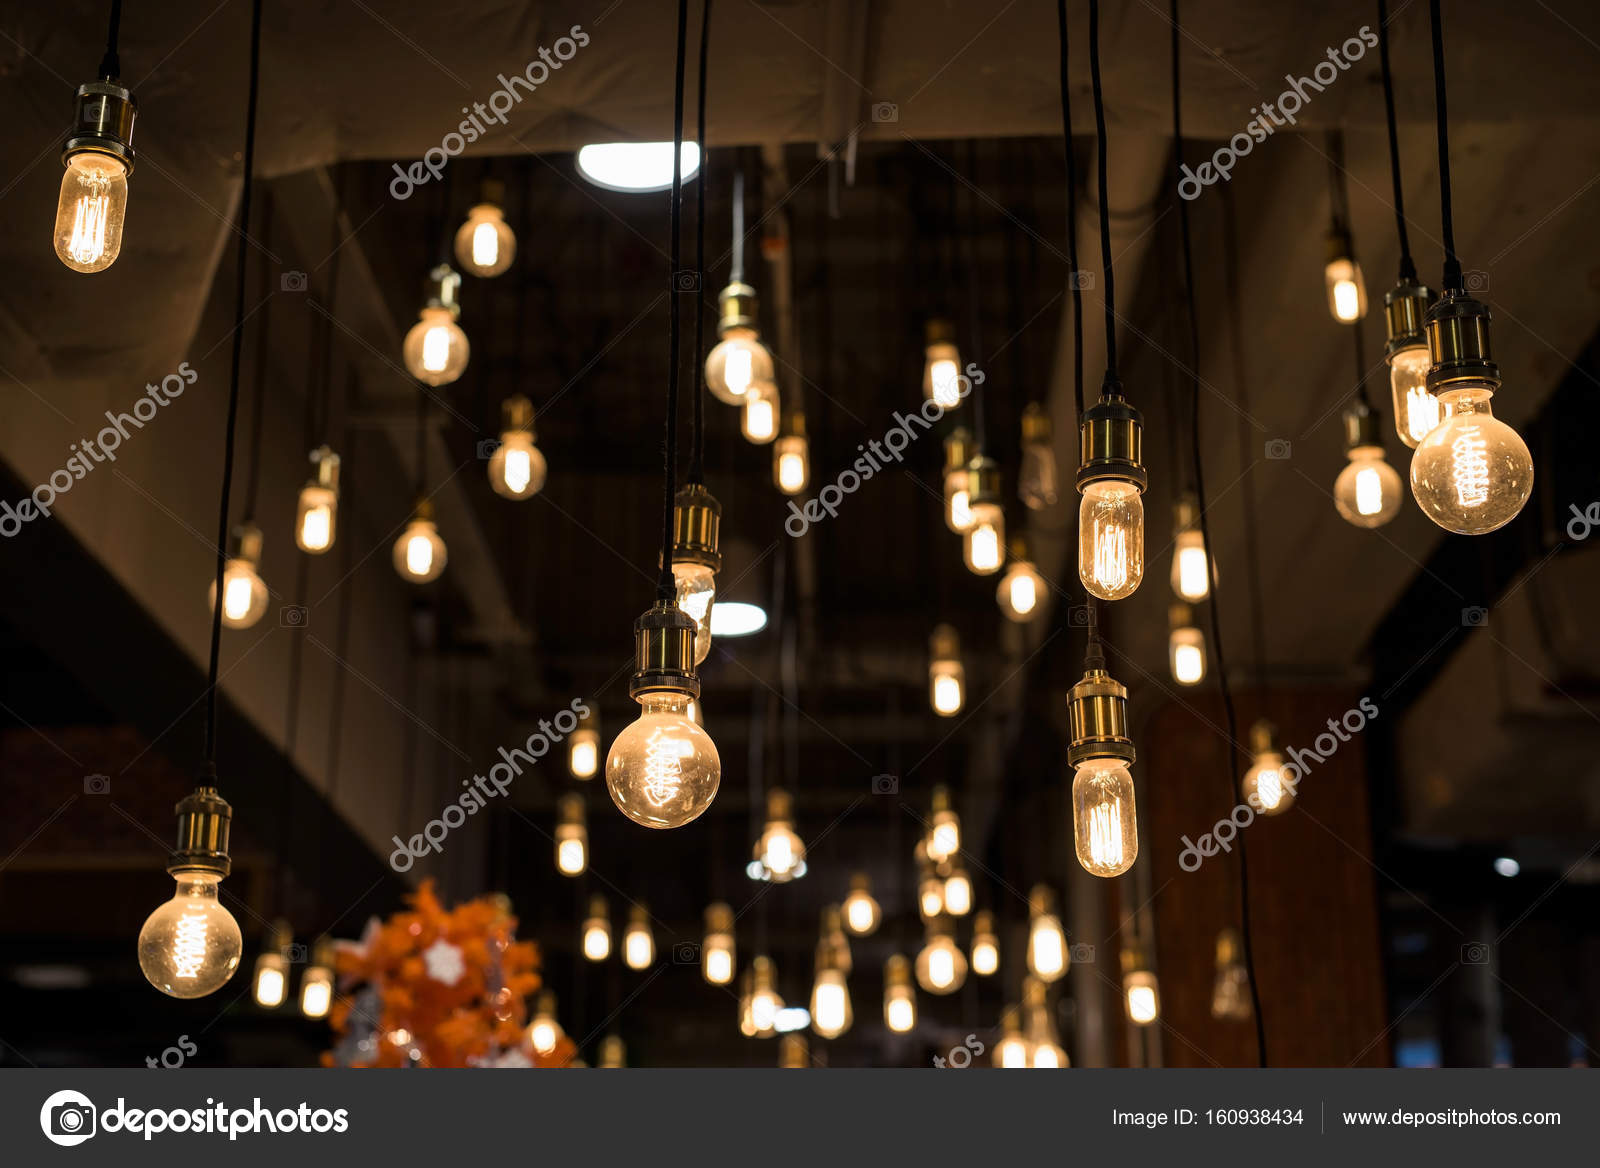 interieur lampen stockfoto